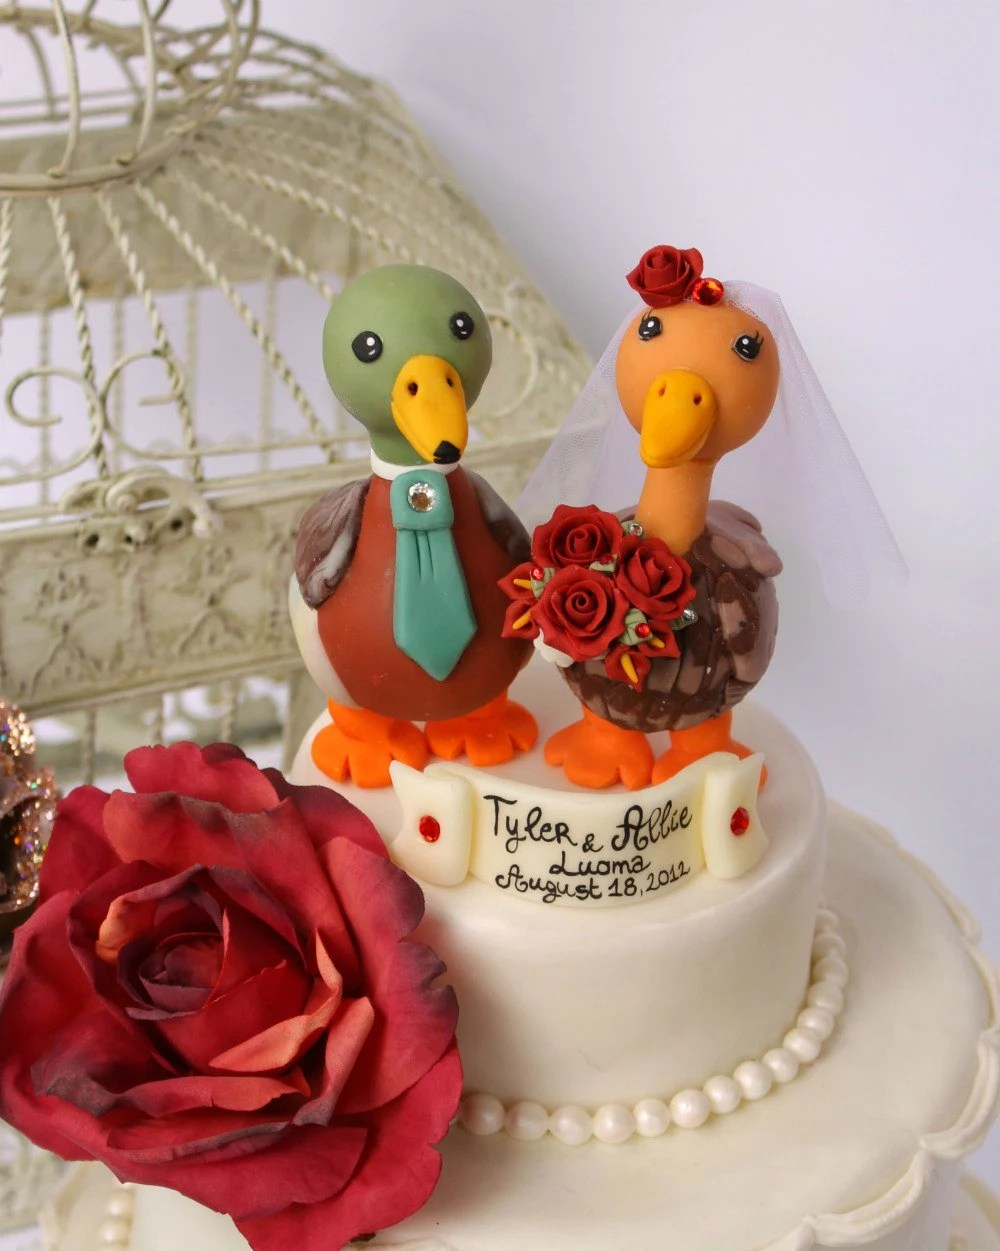 Duck wedding cake topper love birds with banner by PerlillaPets